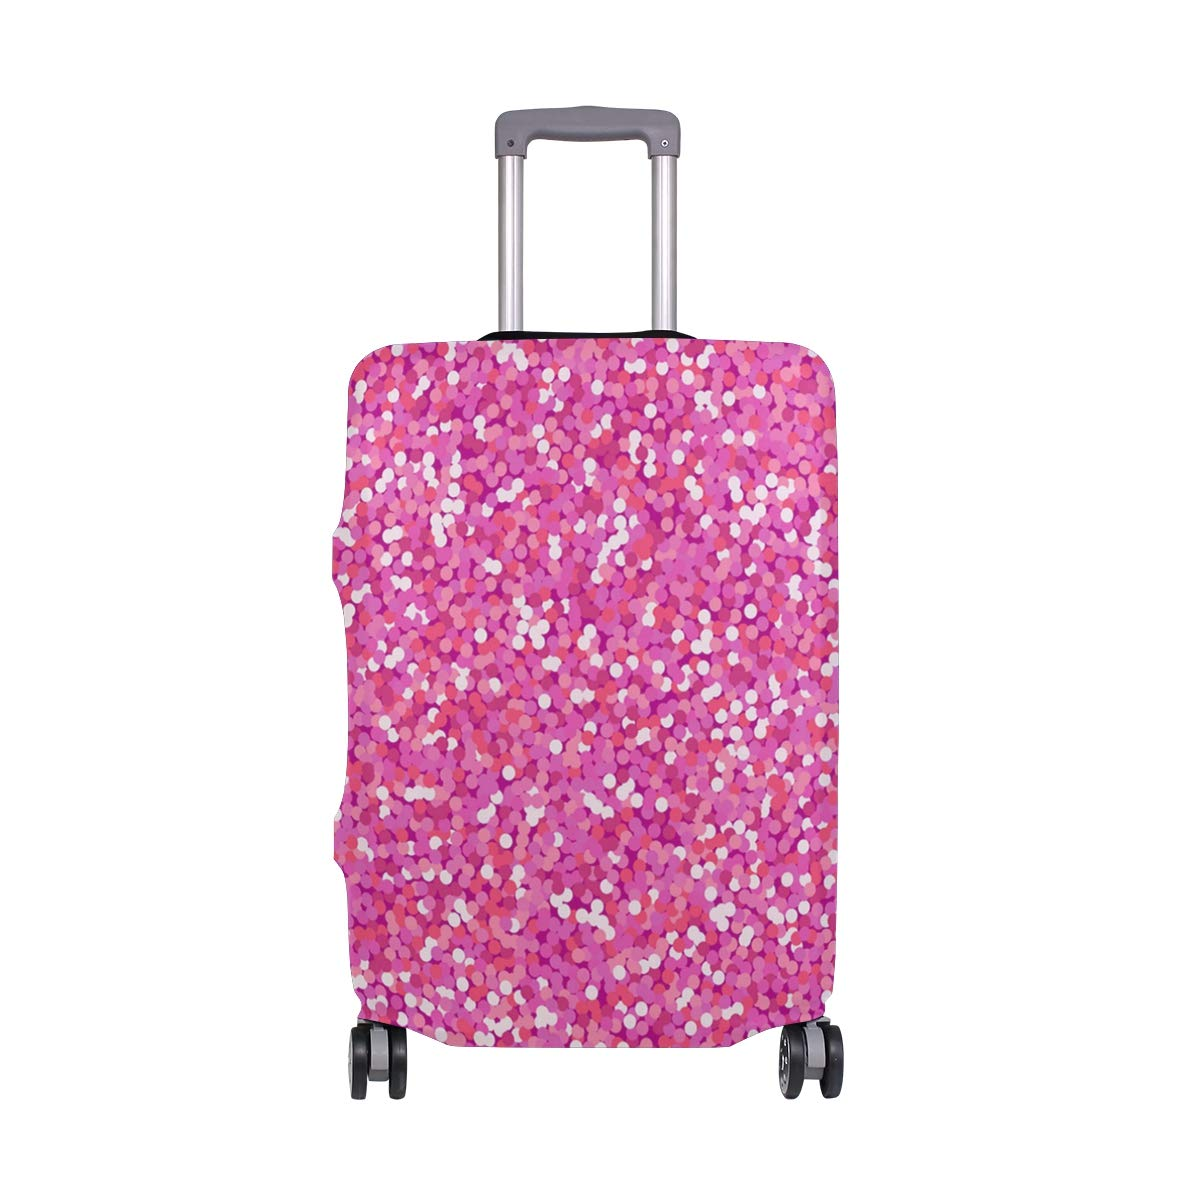 Pink Leather Jacket Traveler Lightweight Rotating Luggage Protector Case Can Carry With You Can Expand Travel Bag Trolley Rolling Luggage Protector Case